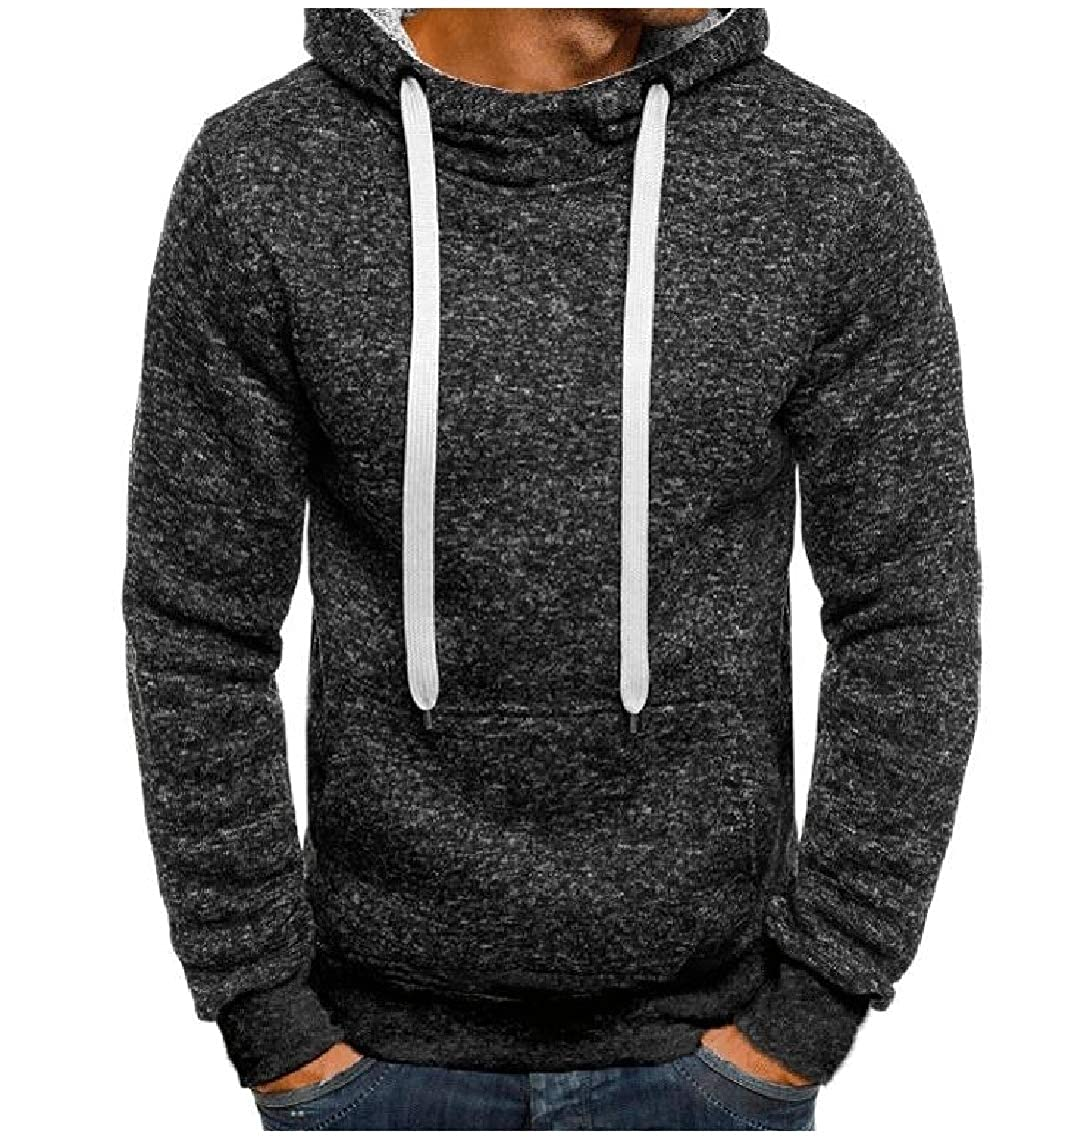 Mfasica Mens Pocket Pullover Lounge Hoodie Drawstring Slim Fleece Sweatshirt